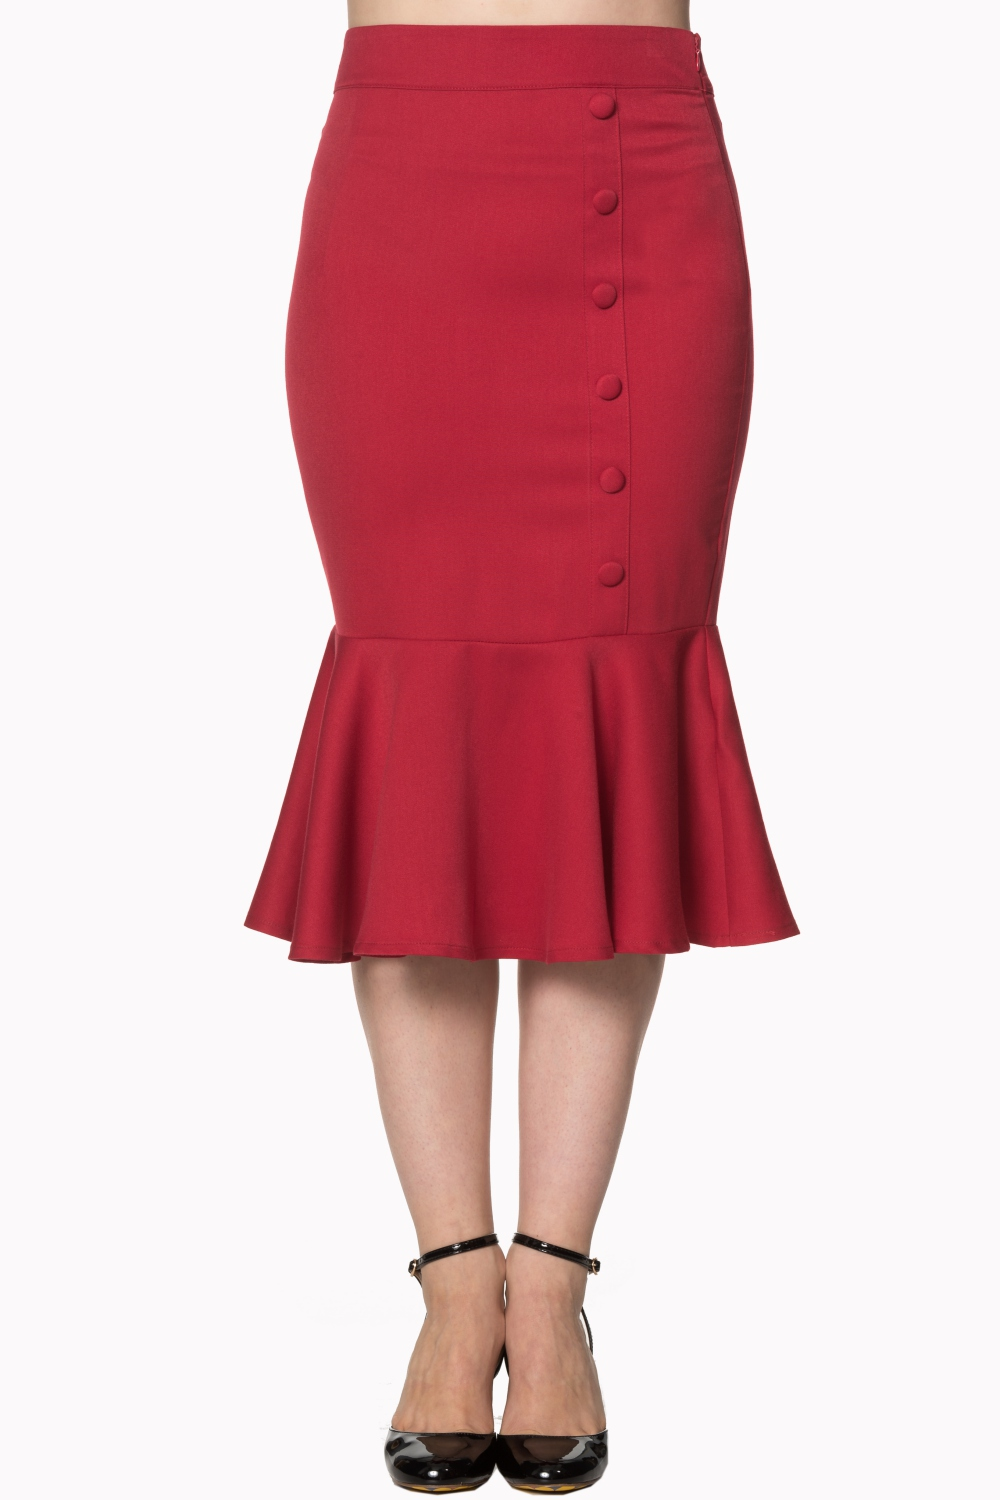 History Repeats Skirt Red